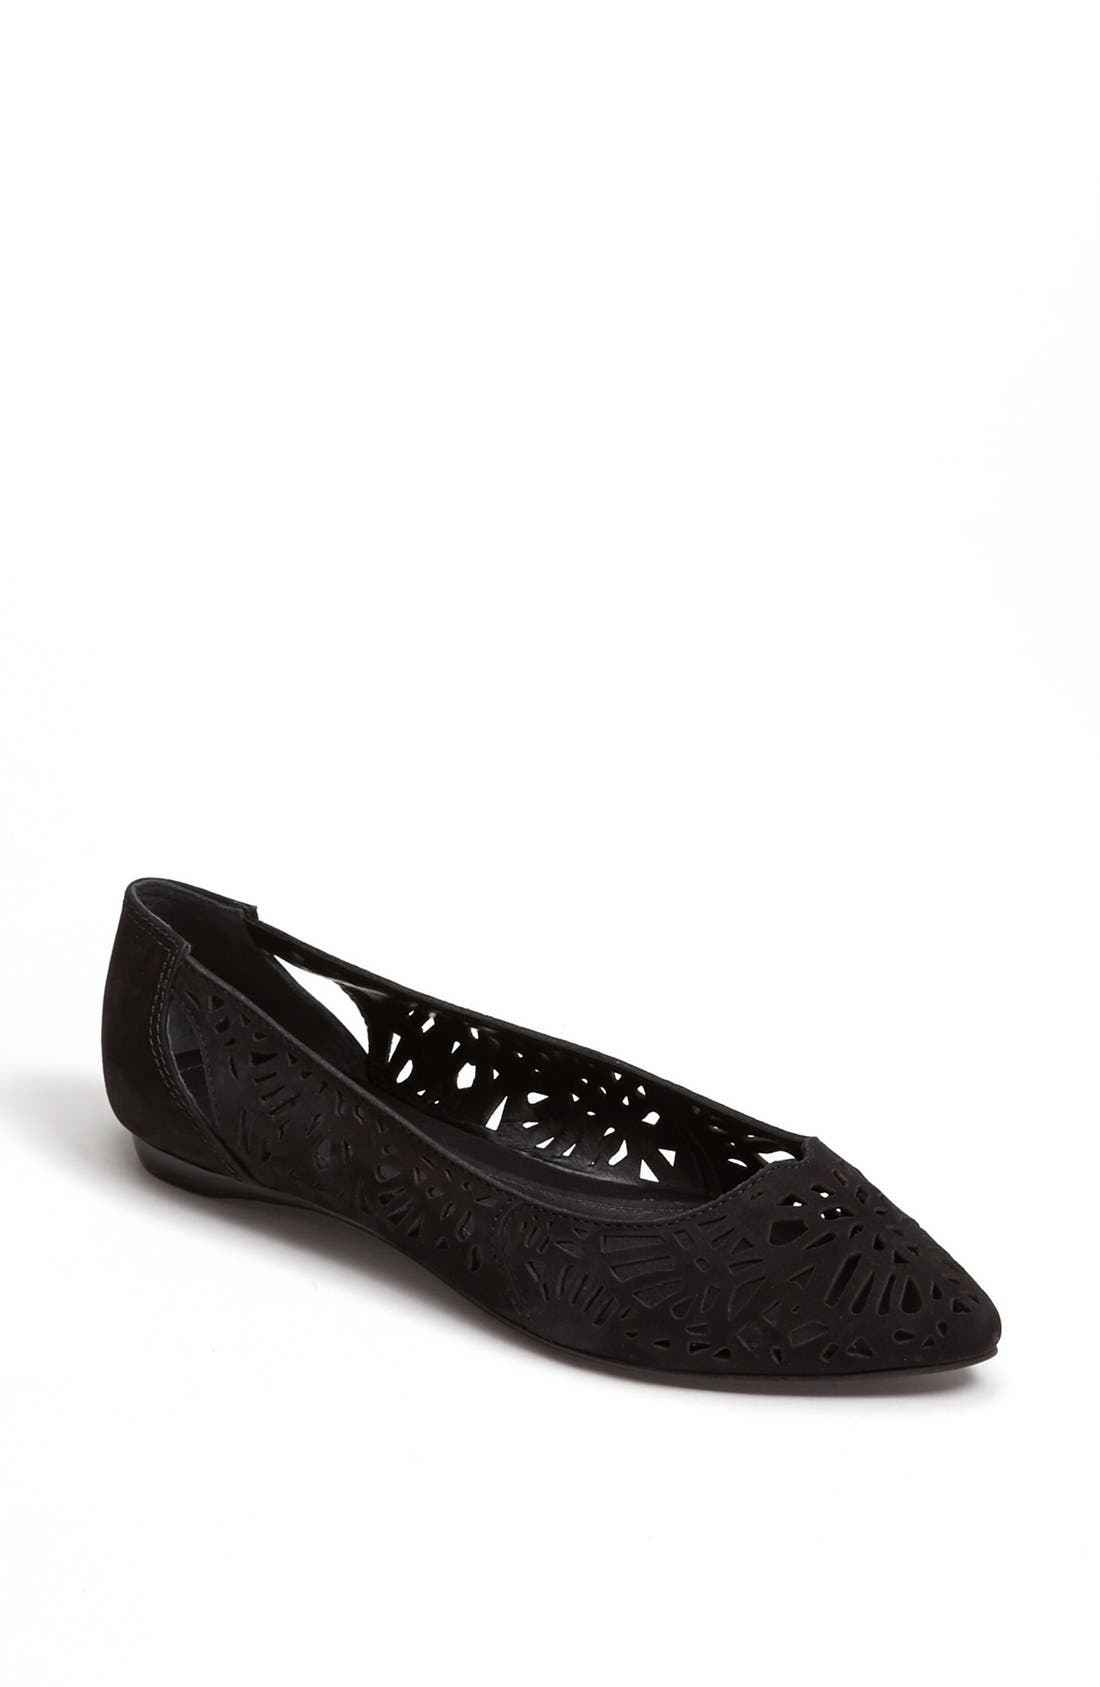 Main Image - Schutz 'Cicely' Perforated Flat